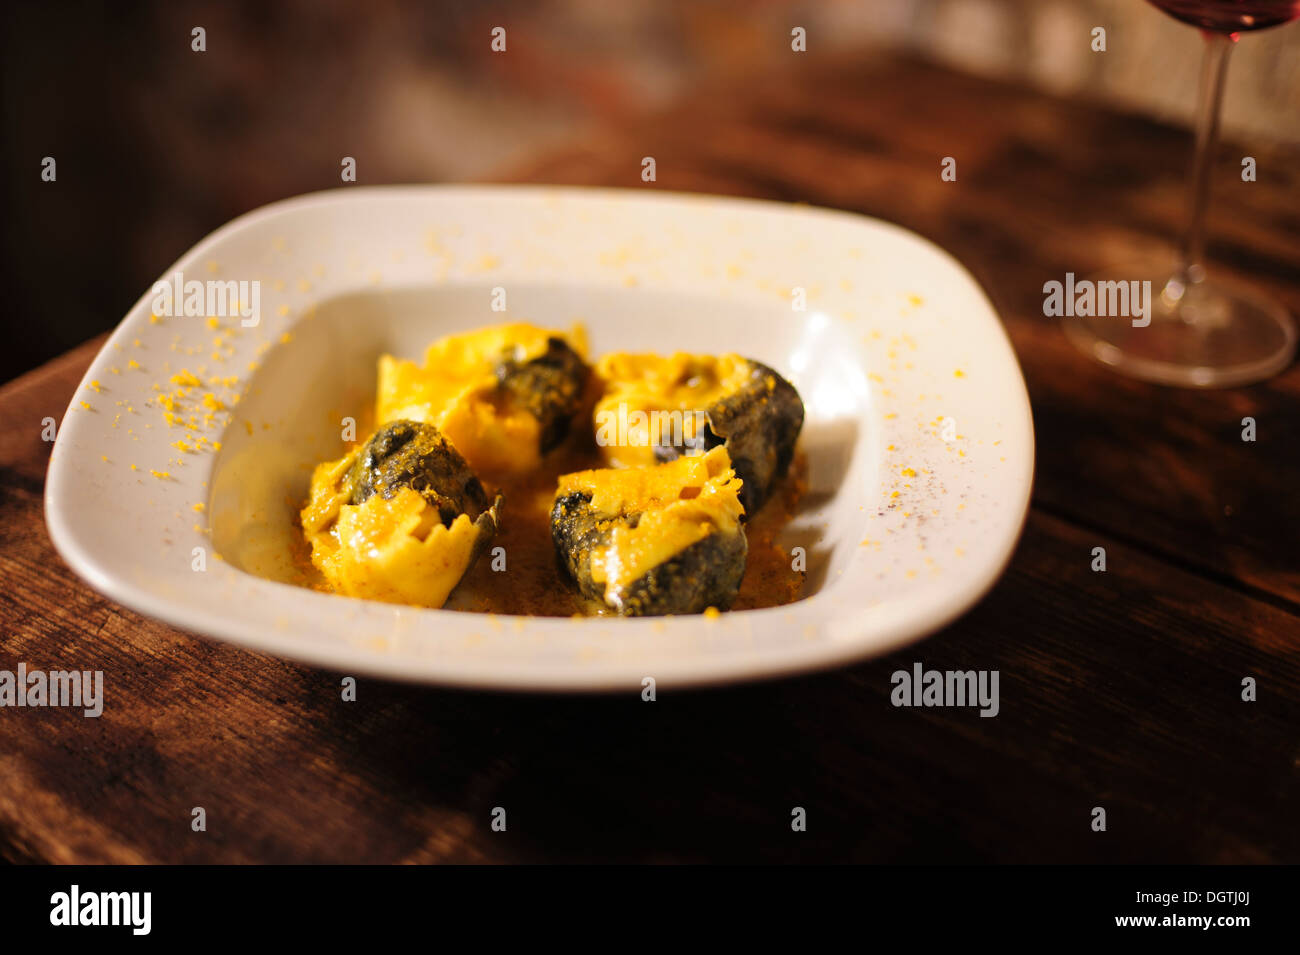 sea bass stuffed Tortellacci, La Mascareta Restaurant, Venice, Italy. - Stock Image